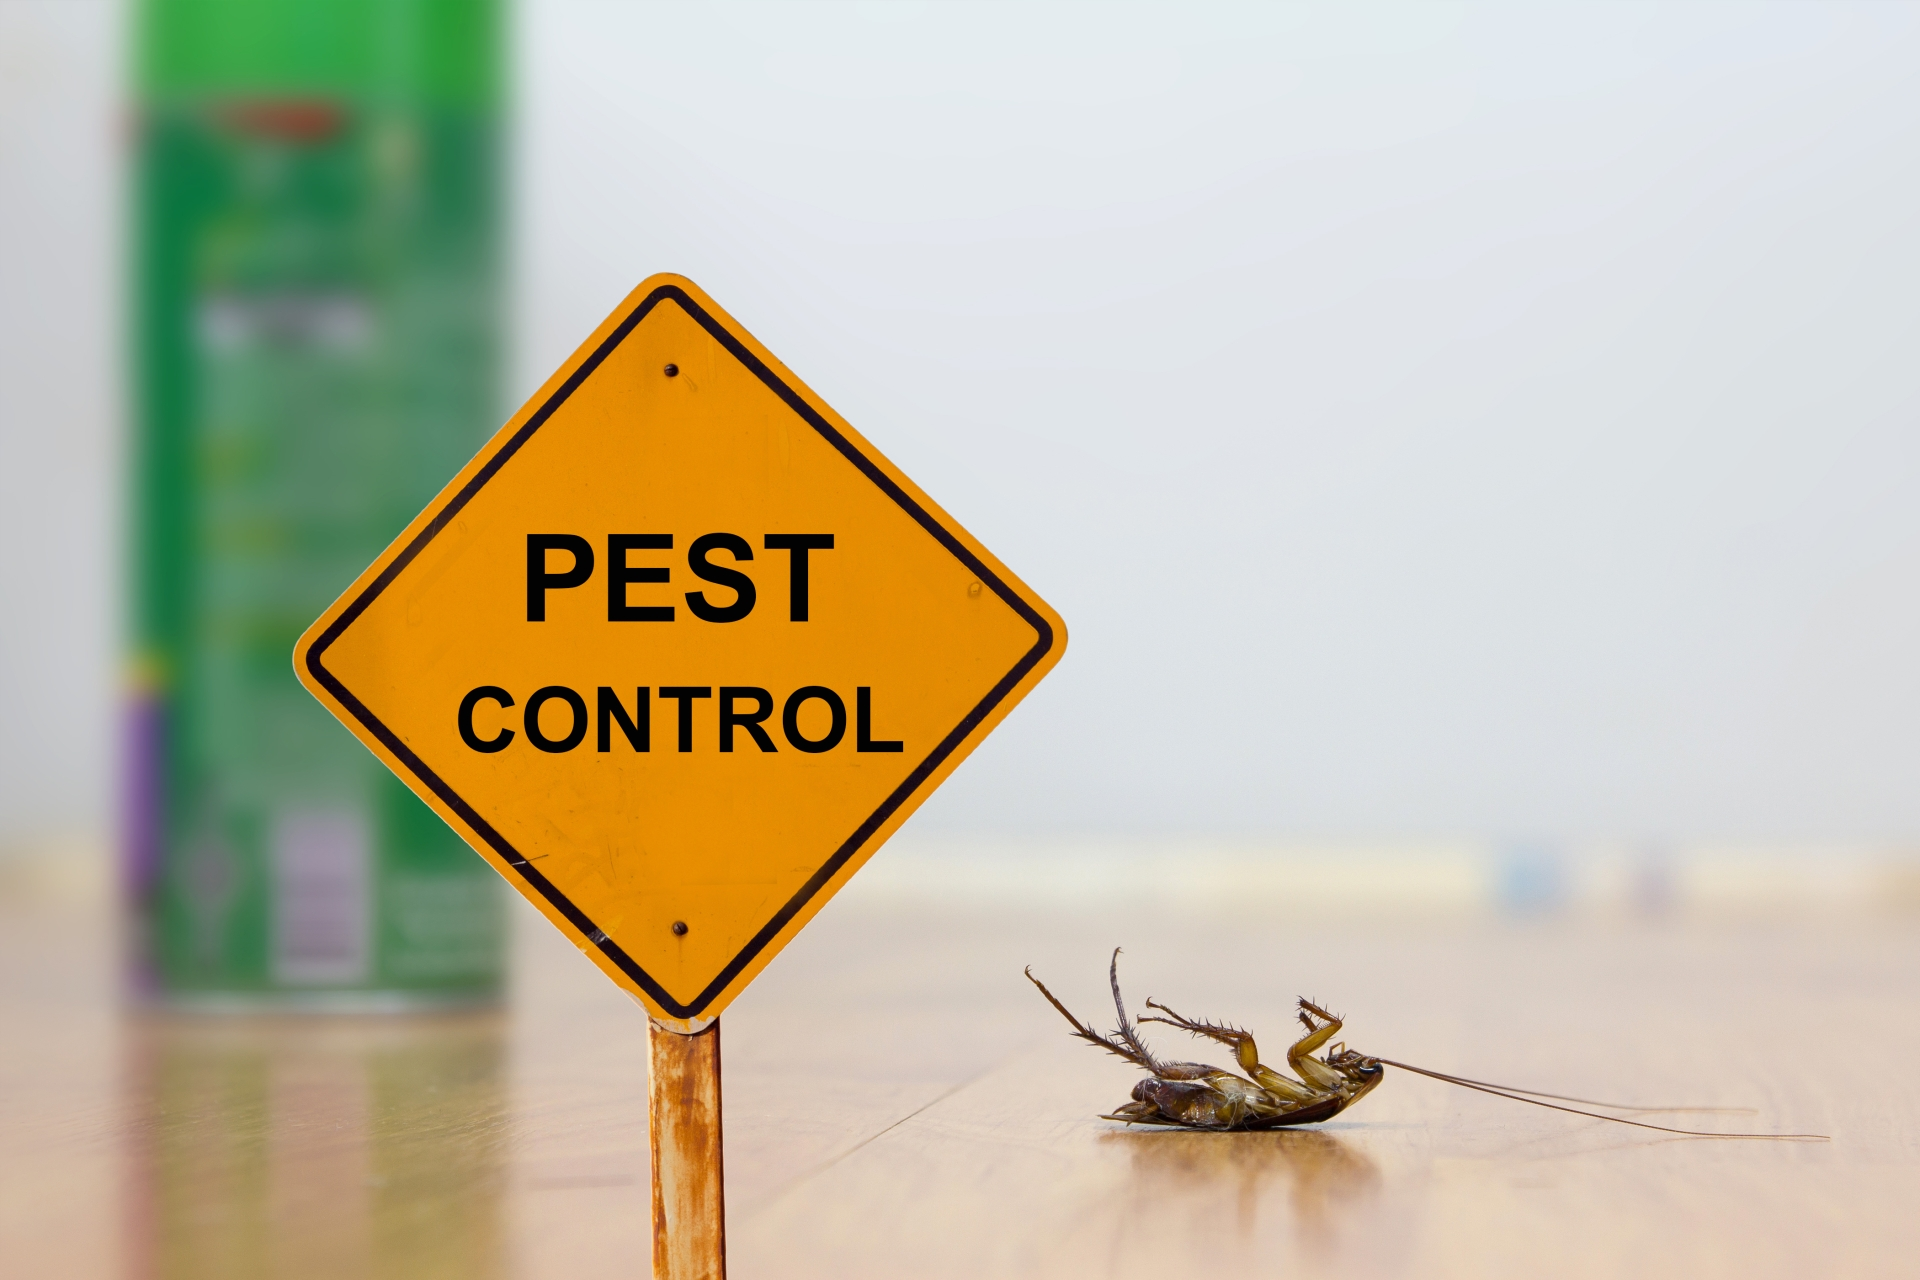 24 Hour Pest Control, Pest Control in Paddington, W2. Call Now 020 8166 9746